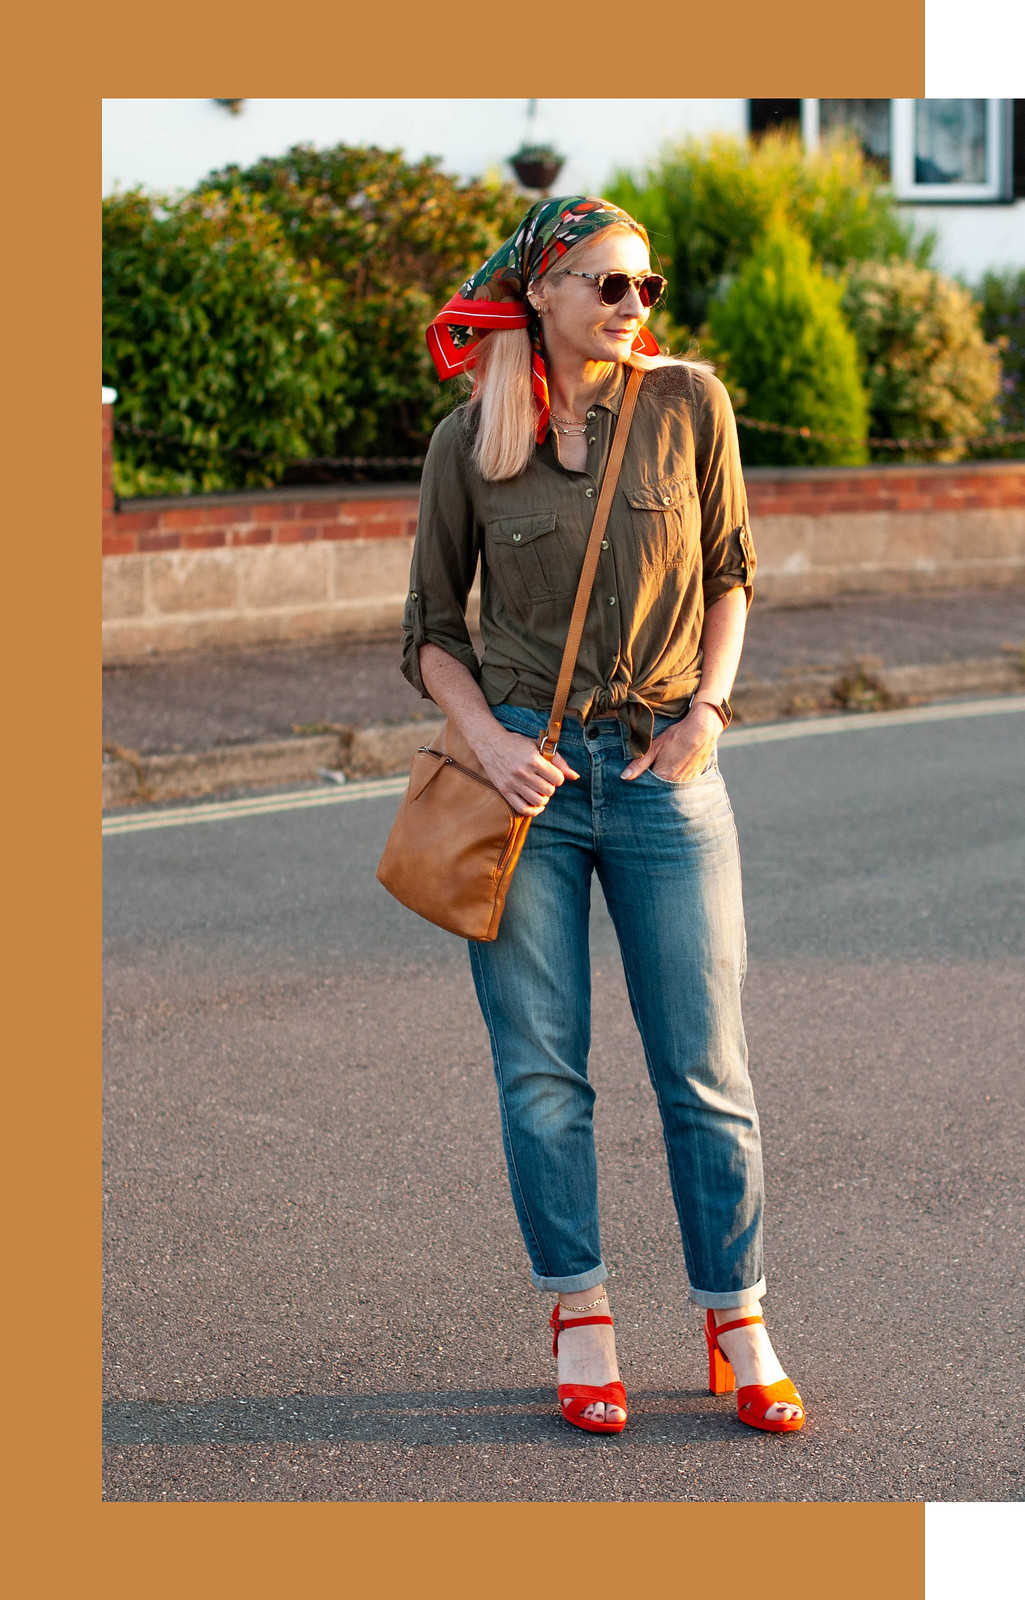 70s Head Scarves and Boyfriend Jeans Older Than Millie Bobby Brown | Not Dressed As Lamb, over 40 style (Catherine is wearing a green and orange patterned headscarf, a loose olive green shirt, boyfriend jeans and strappy orange sandals in a street-style photo)